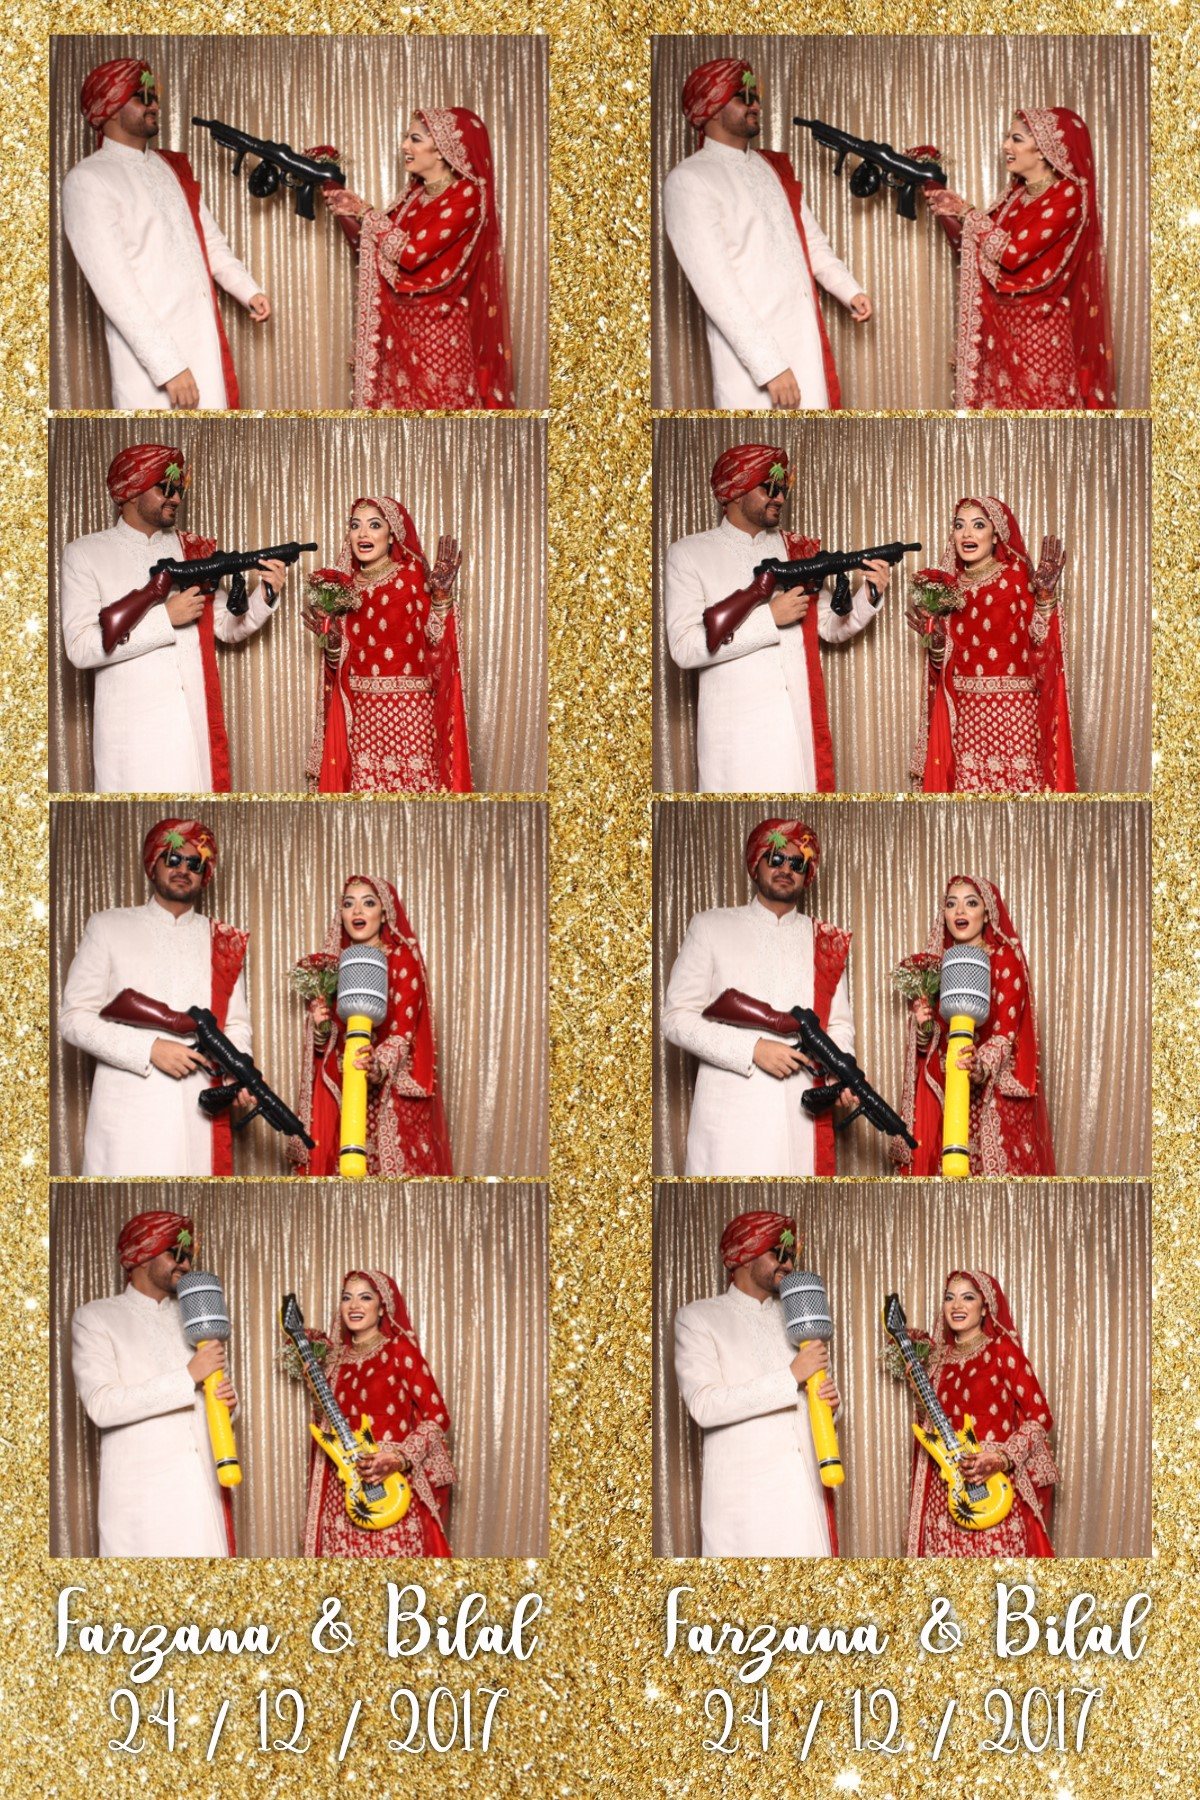 Open Air Photobooth - Asian wedding in Manchester